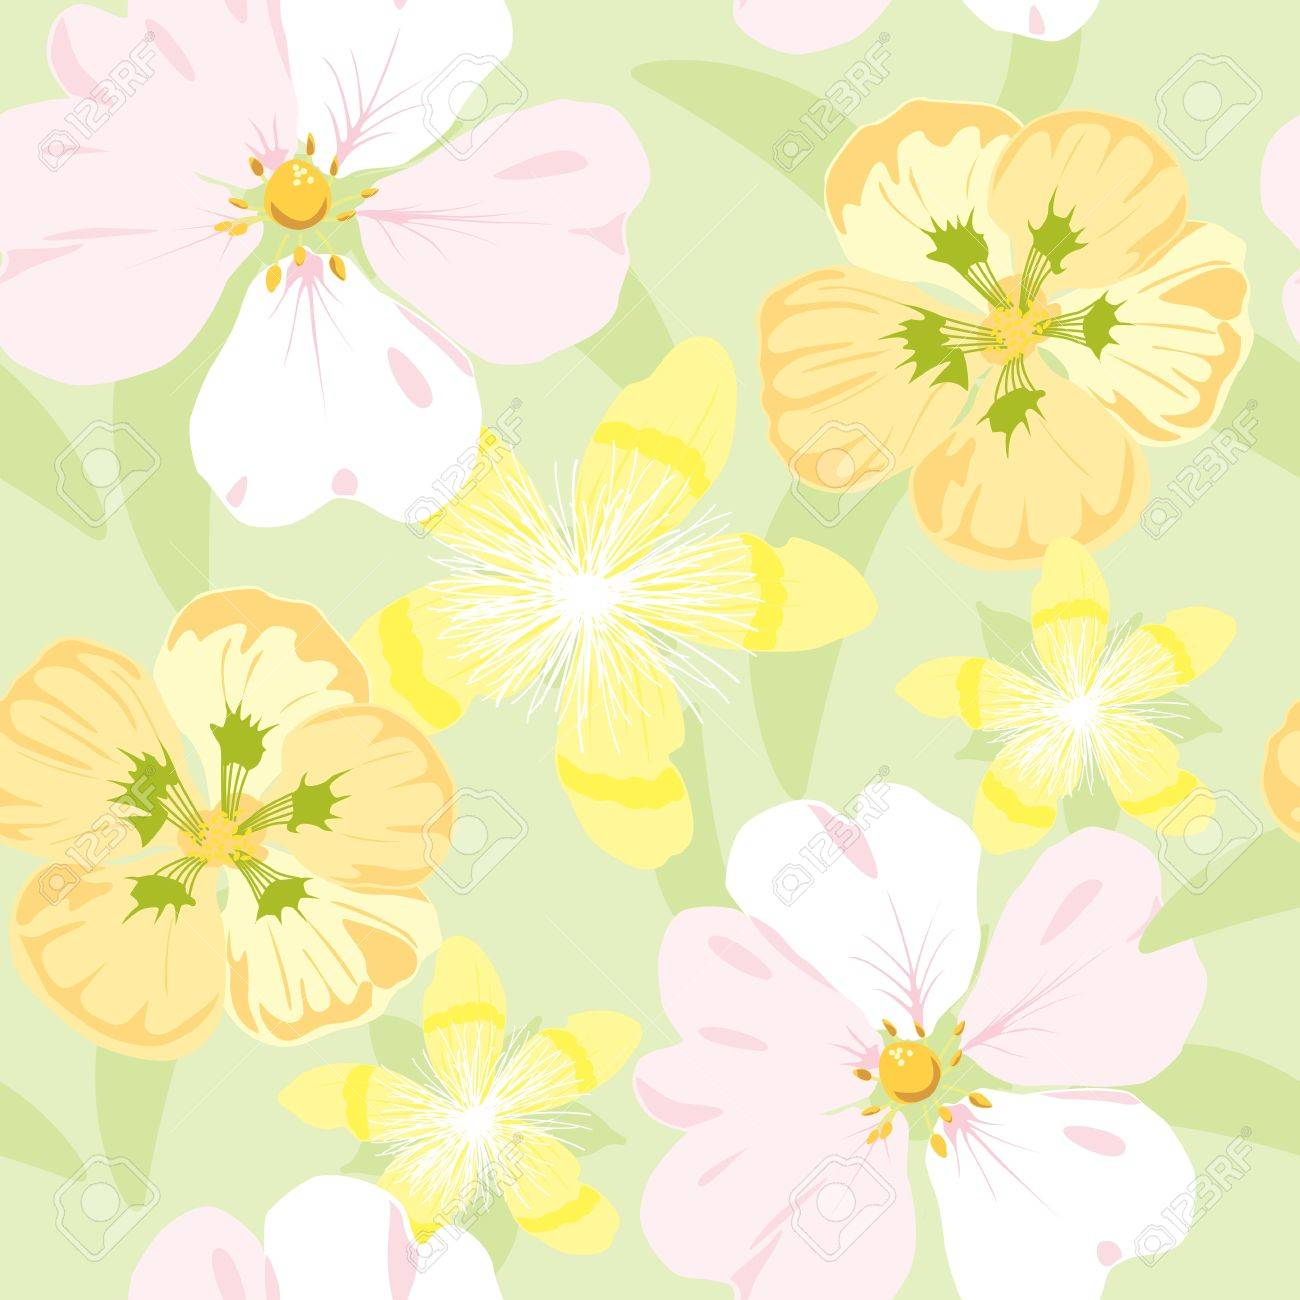 floral garden, wrapping, seamless pattern, pastel background illustration - 14410189